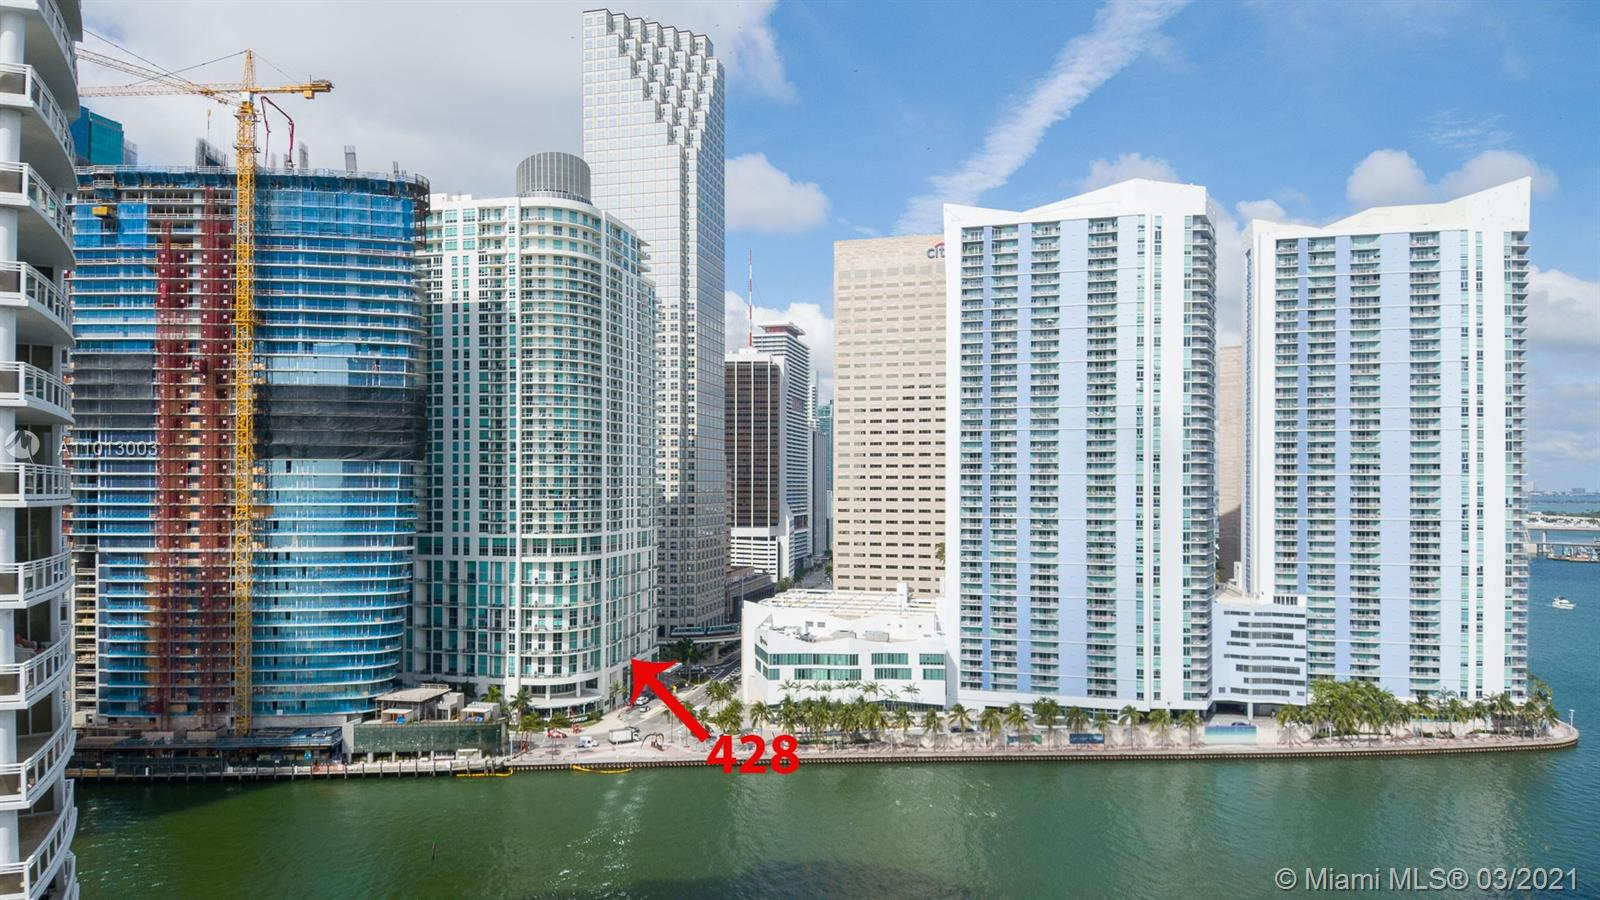 LIVE IN THIS SPACIOUS AND BRIGHT LOFT AT MET 1, IN THE HEART OF MIAMI'S FINANCIAL DISTRICT. ONE OF THE BEST LOCATIONS FOR WALKABILITY, STEPS FROM WHOLE FOODS, BAYFRONT PARK, MOVIE THEATER, WALKING DISTANCE TO BRICKELL. NESTLED IN BETWEEN ONE MIAMI AND THE UPCOMING ASTON MARTIN RESIDENCES. LARGE LOFT WITH HALF BATH DOWNSTAIRS AND FULL BATH AND OPEN MASTER BEDROOM UPSTAIRS, SIMPLY A COOL LAYOUT. GREAT SENSE OF SPACE DUE TO THE EXTRA HIGH CEILINGS, PARTIAL WATER VIEW FROM BALCONY, AND OTHER AREAS WITHIN UNIT. MET 1 IS AN IMPECCABLY RUN BUILDING OFFERING A VIBRANT URBAN LIFESTYLE.